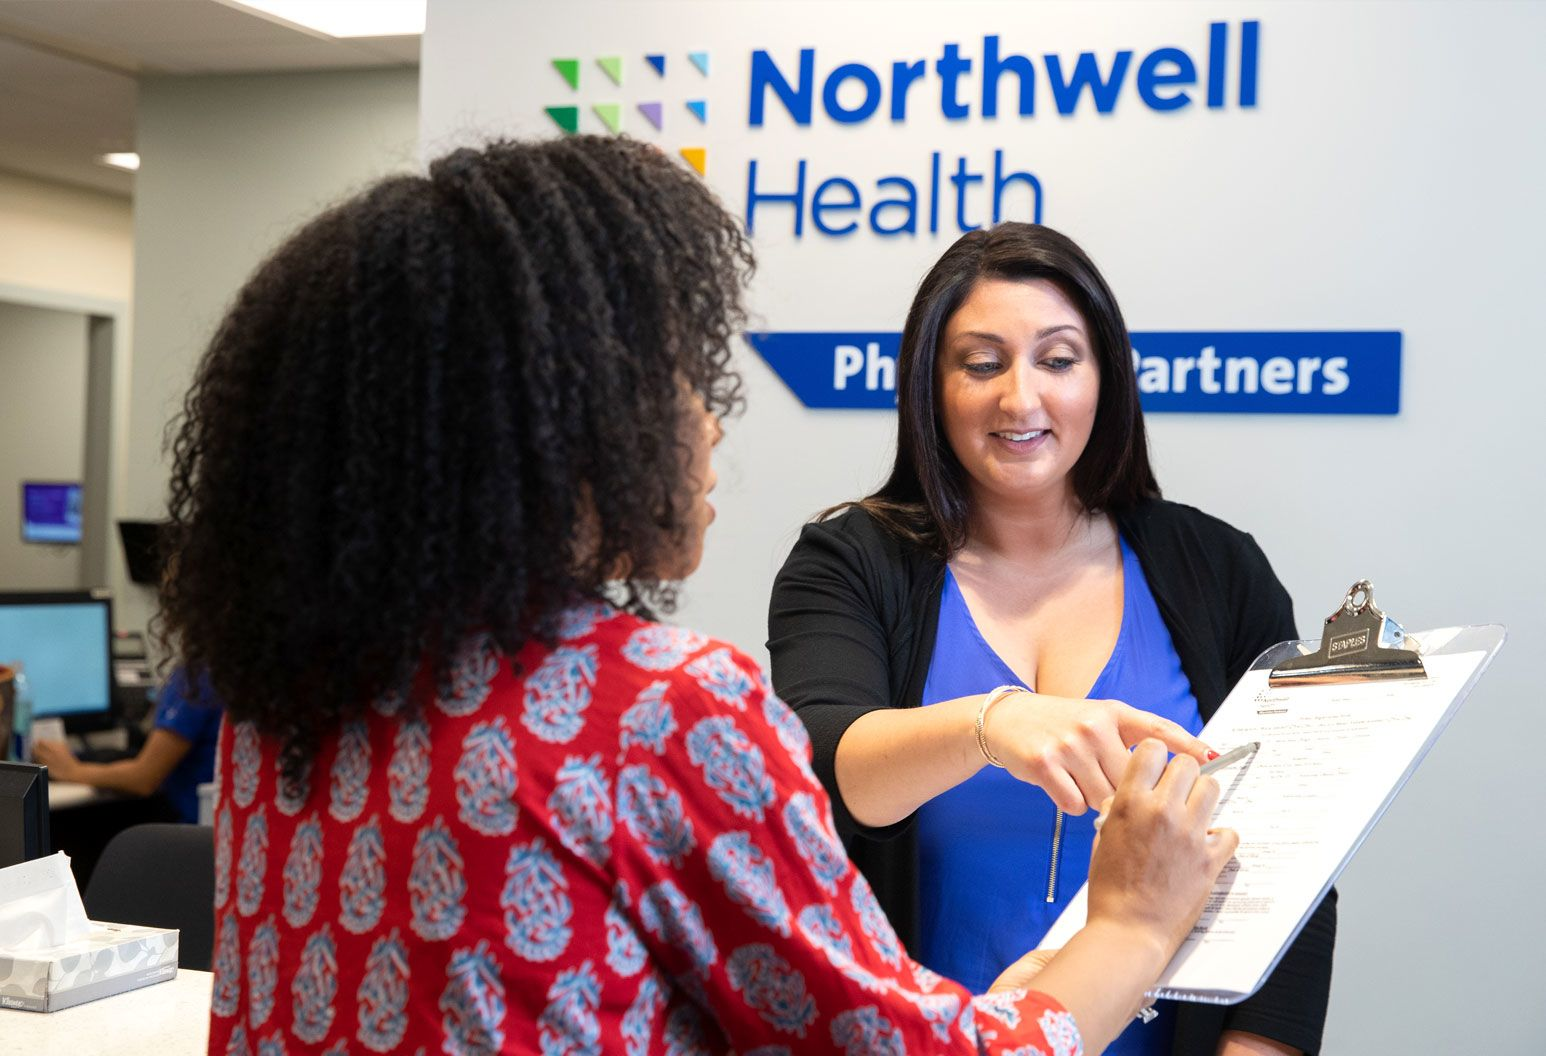 An office assistant at a Northwell Health Physician Partners practices assists a patient in completing a form.